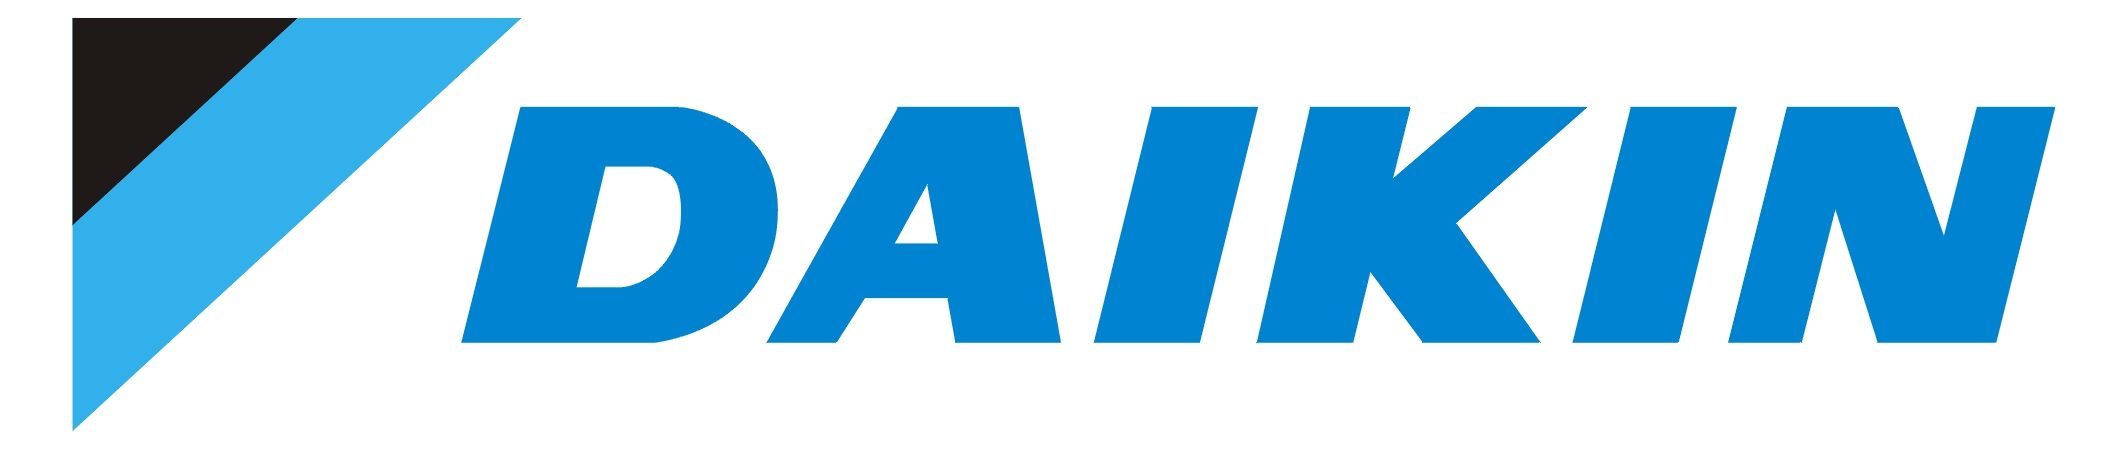 Image - Logo daikin.jpg - Logopedia, the logo and branding ...